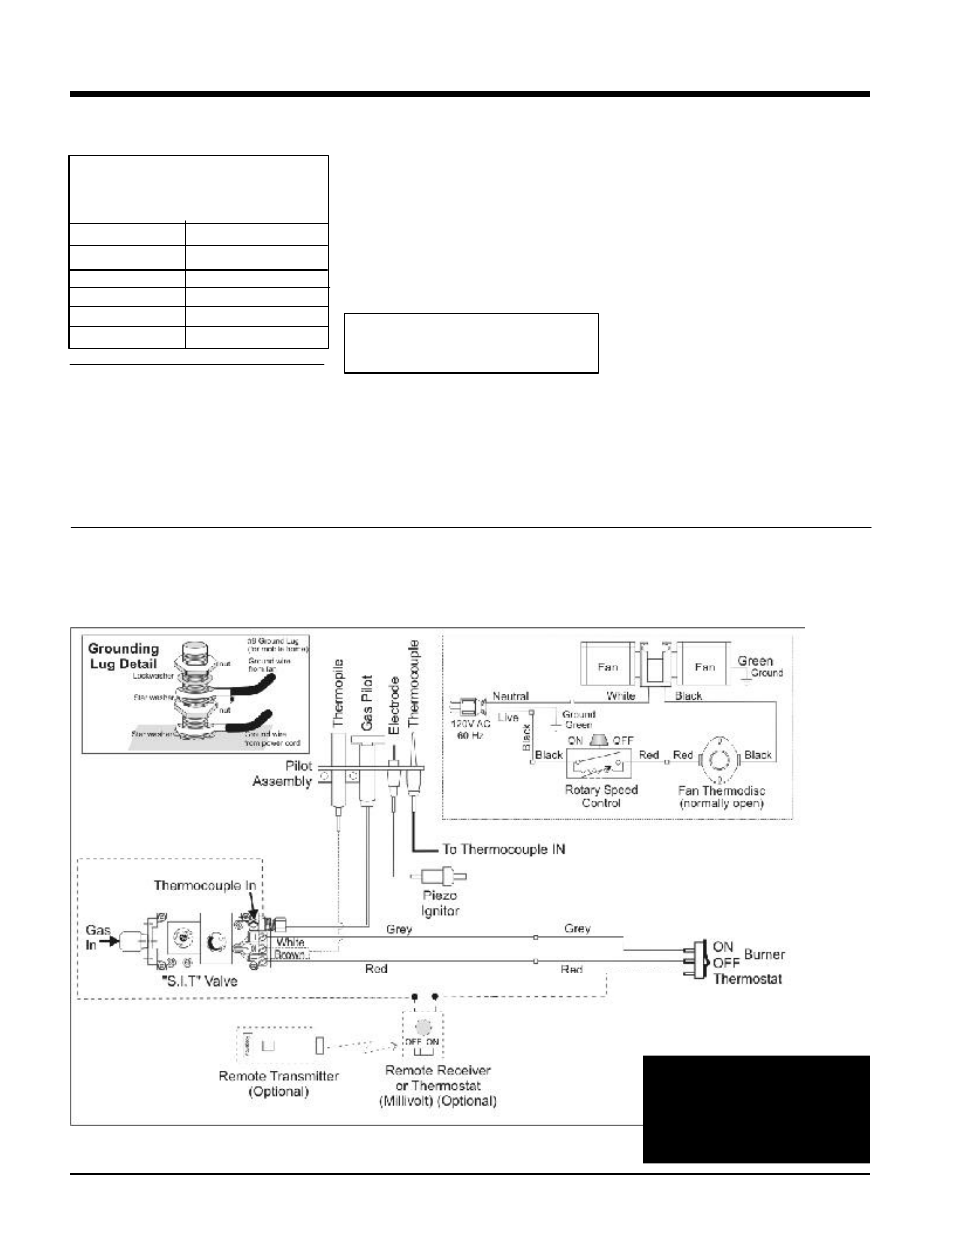 Wiring Diagram For Eburn Thermostat Just Wirings 24 Volt Installation Tara Optional Remote Control Rh Manualsdir Com Digital